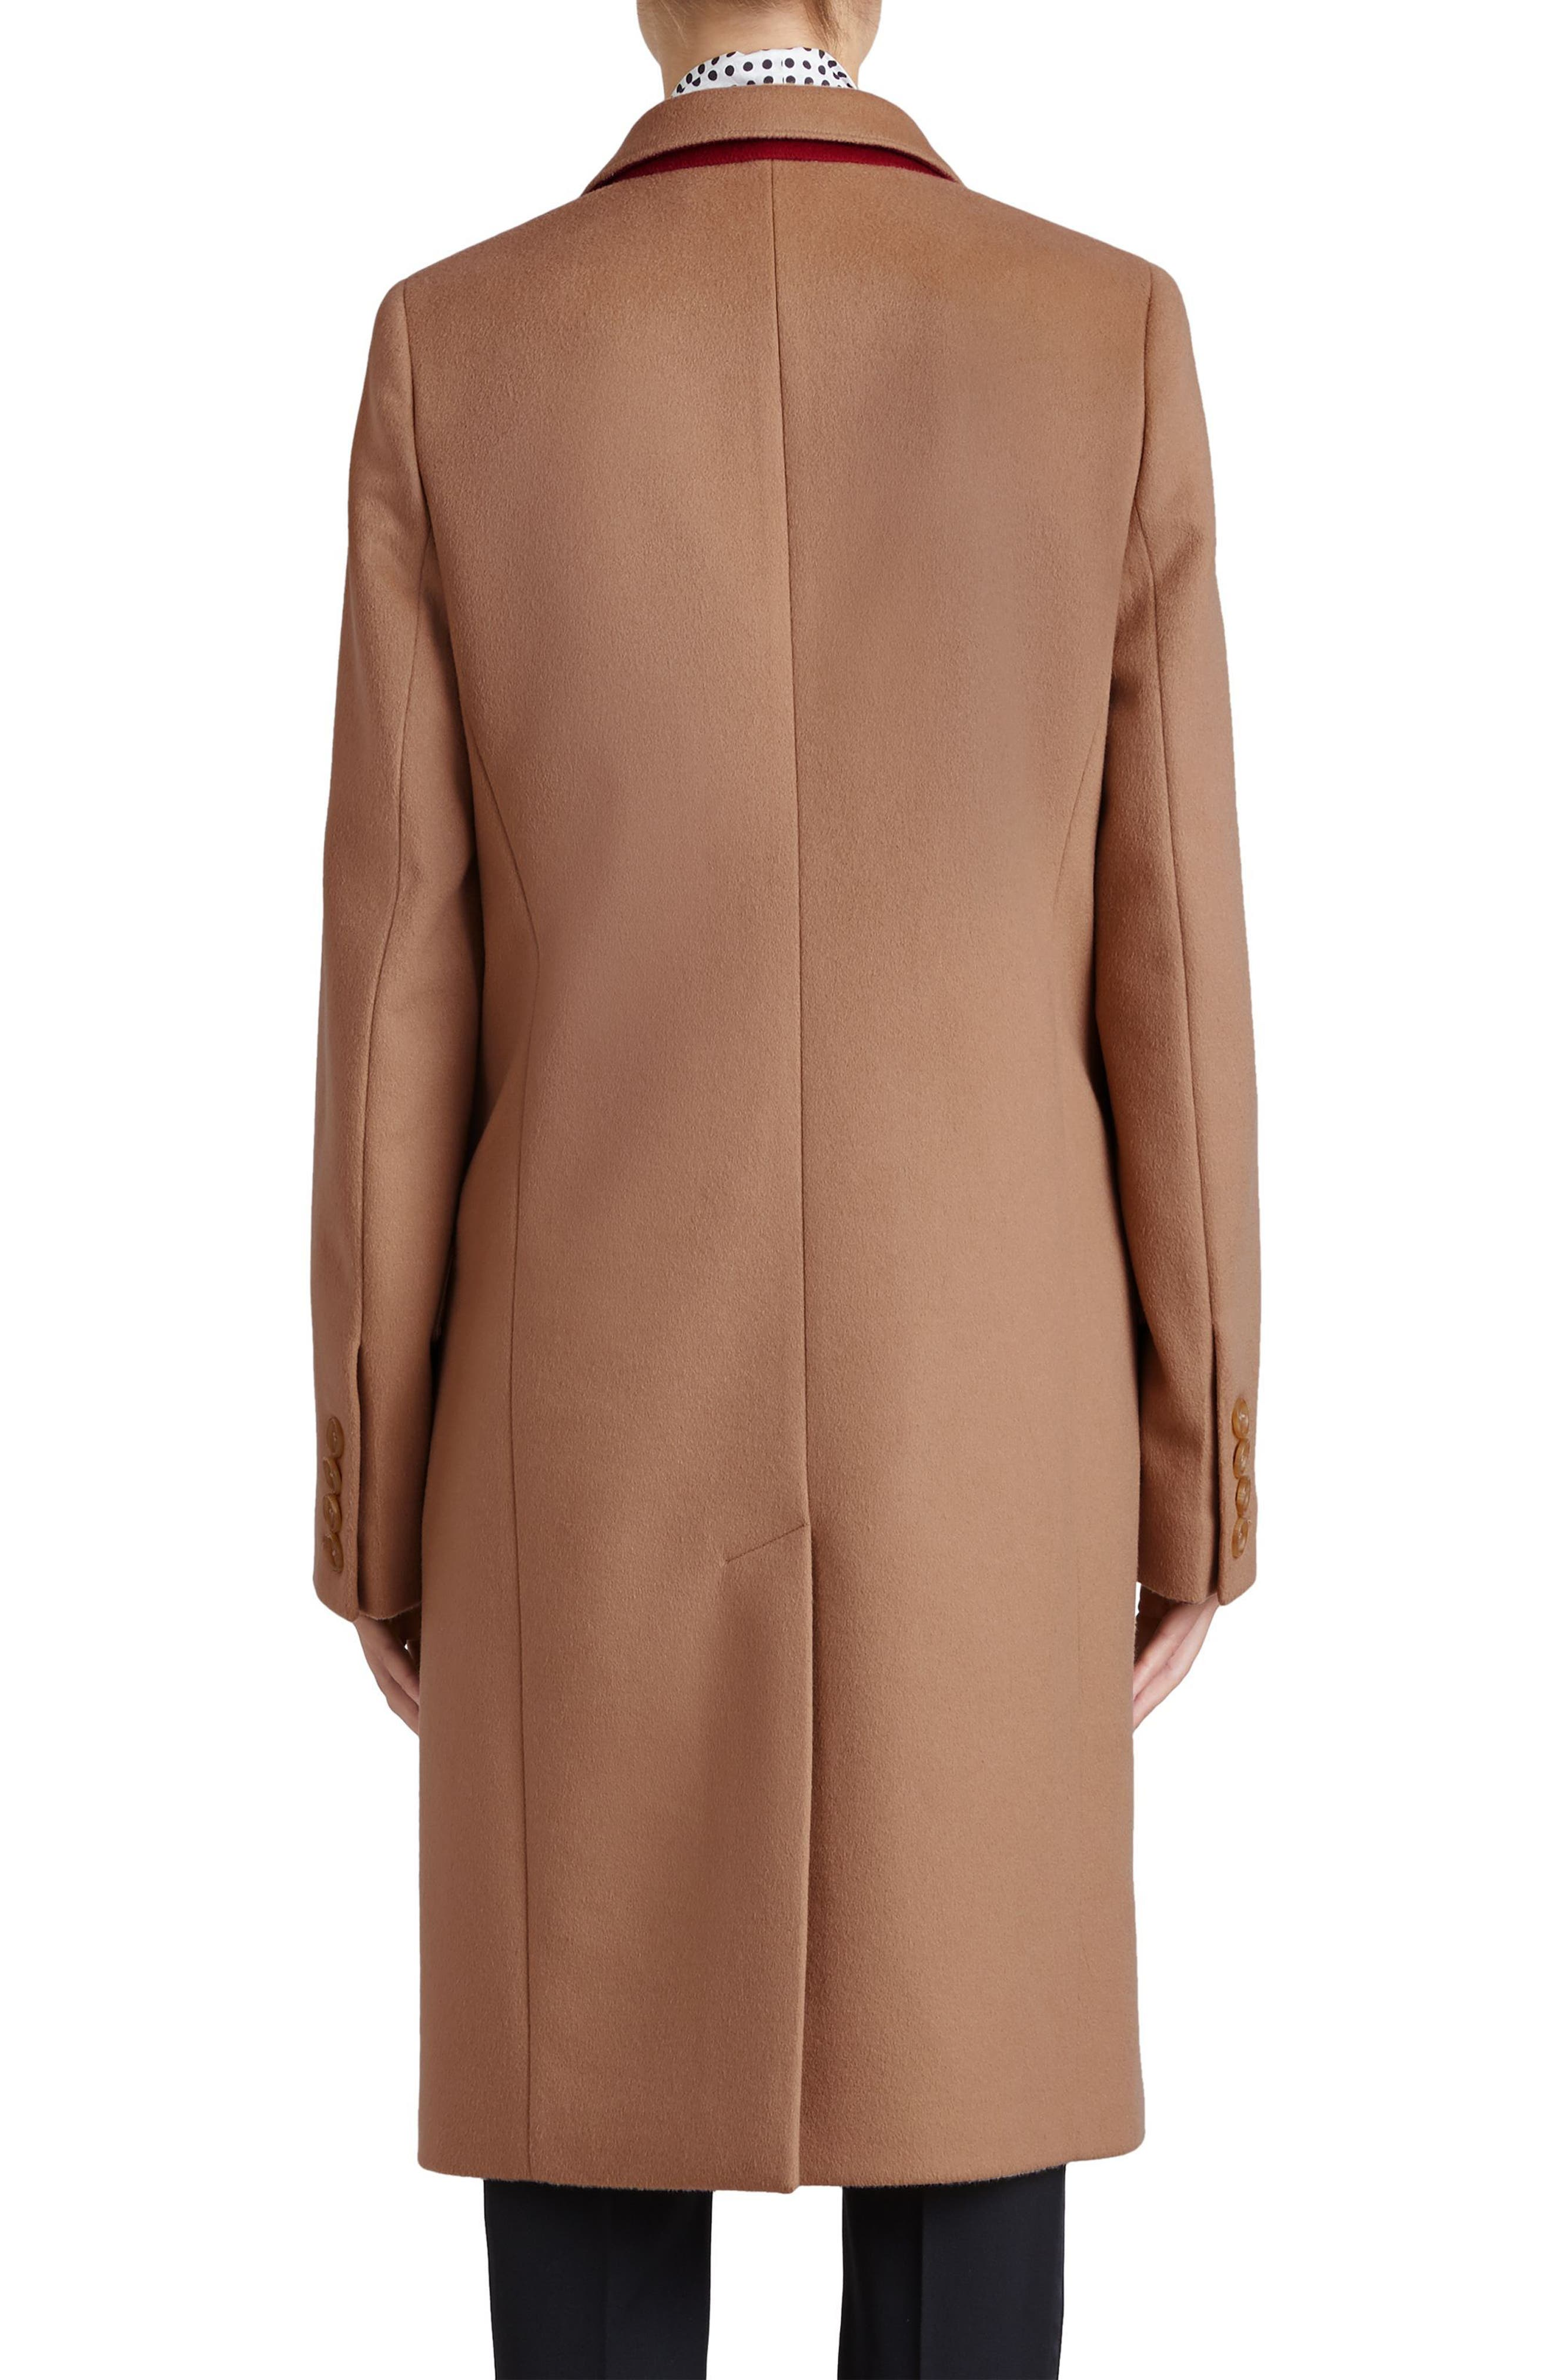 Fellhurst Wool & Cashmere Coat,                             Alternate thumbnail 2, color,                             Camel